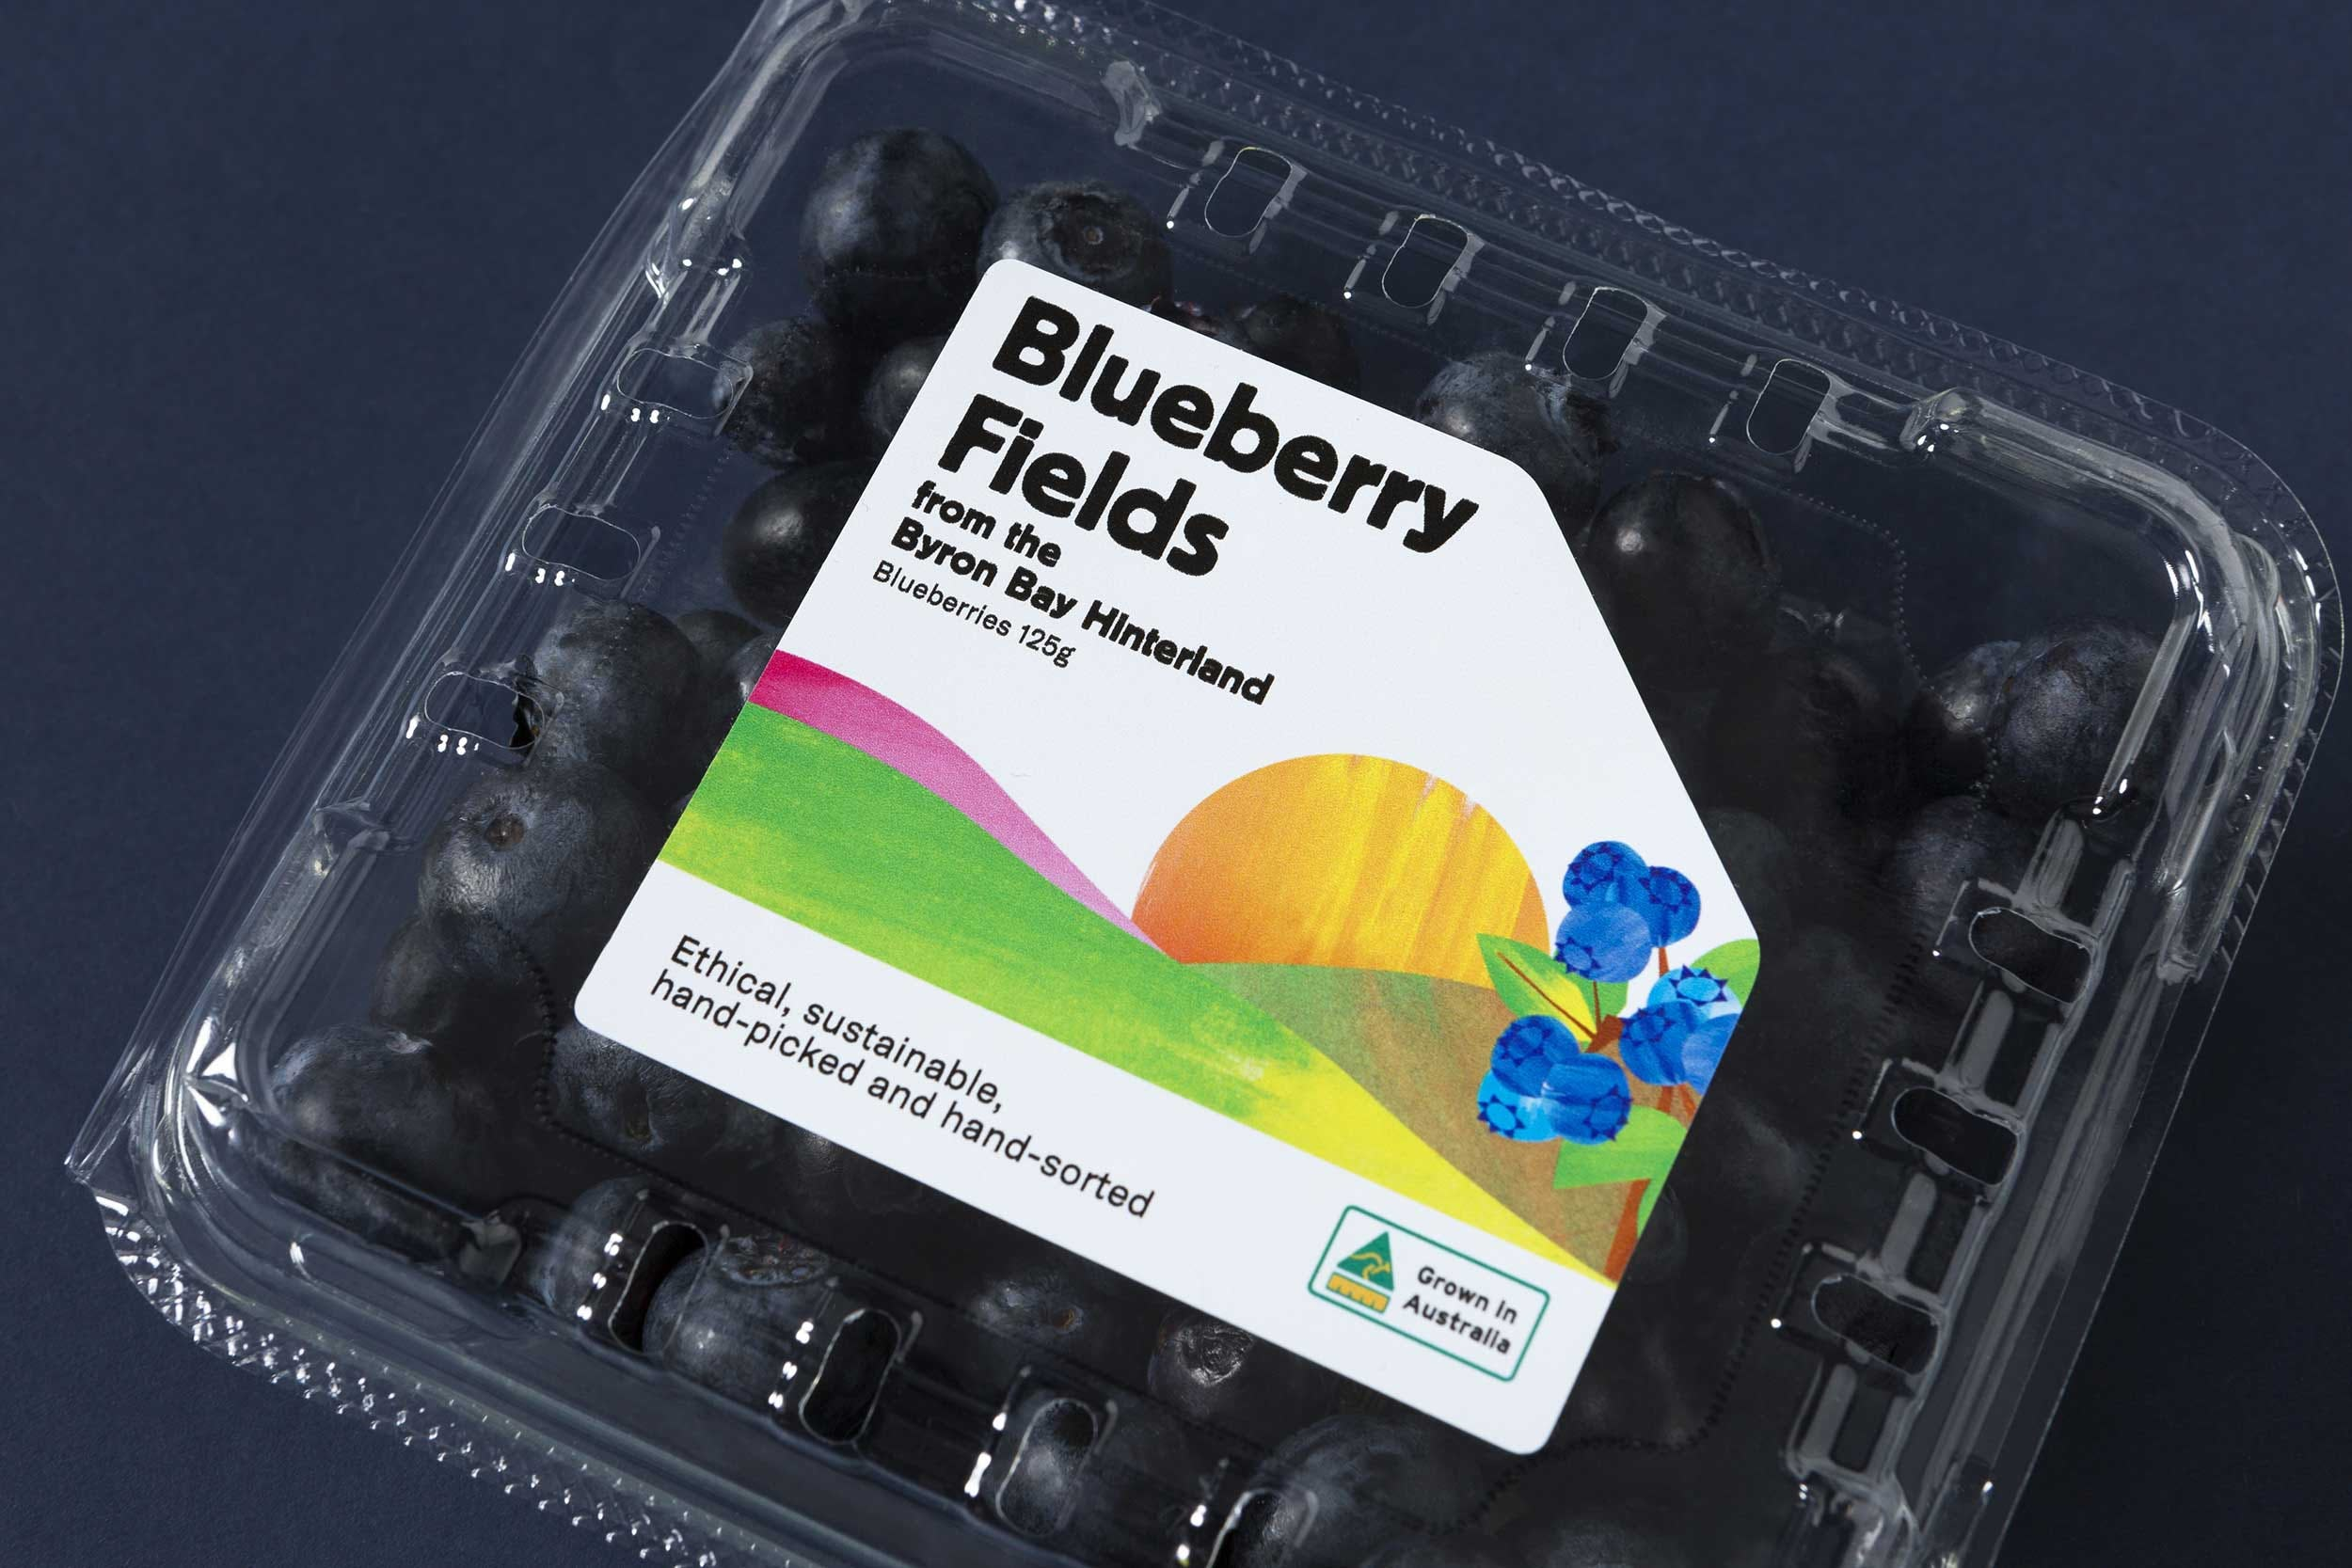 Product shot of Blueberry Field punnet